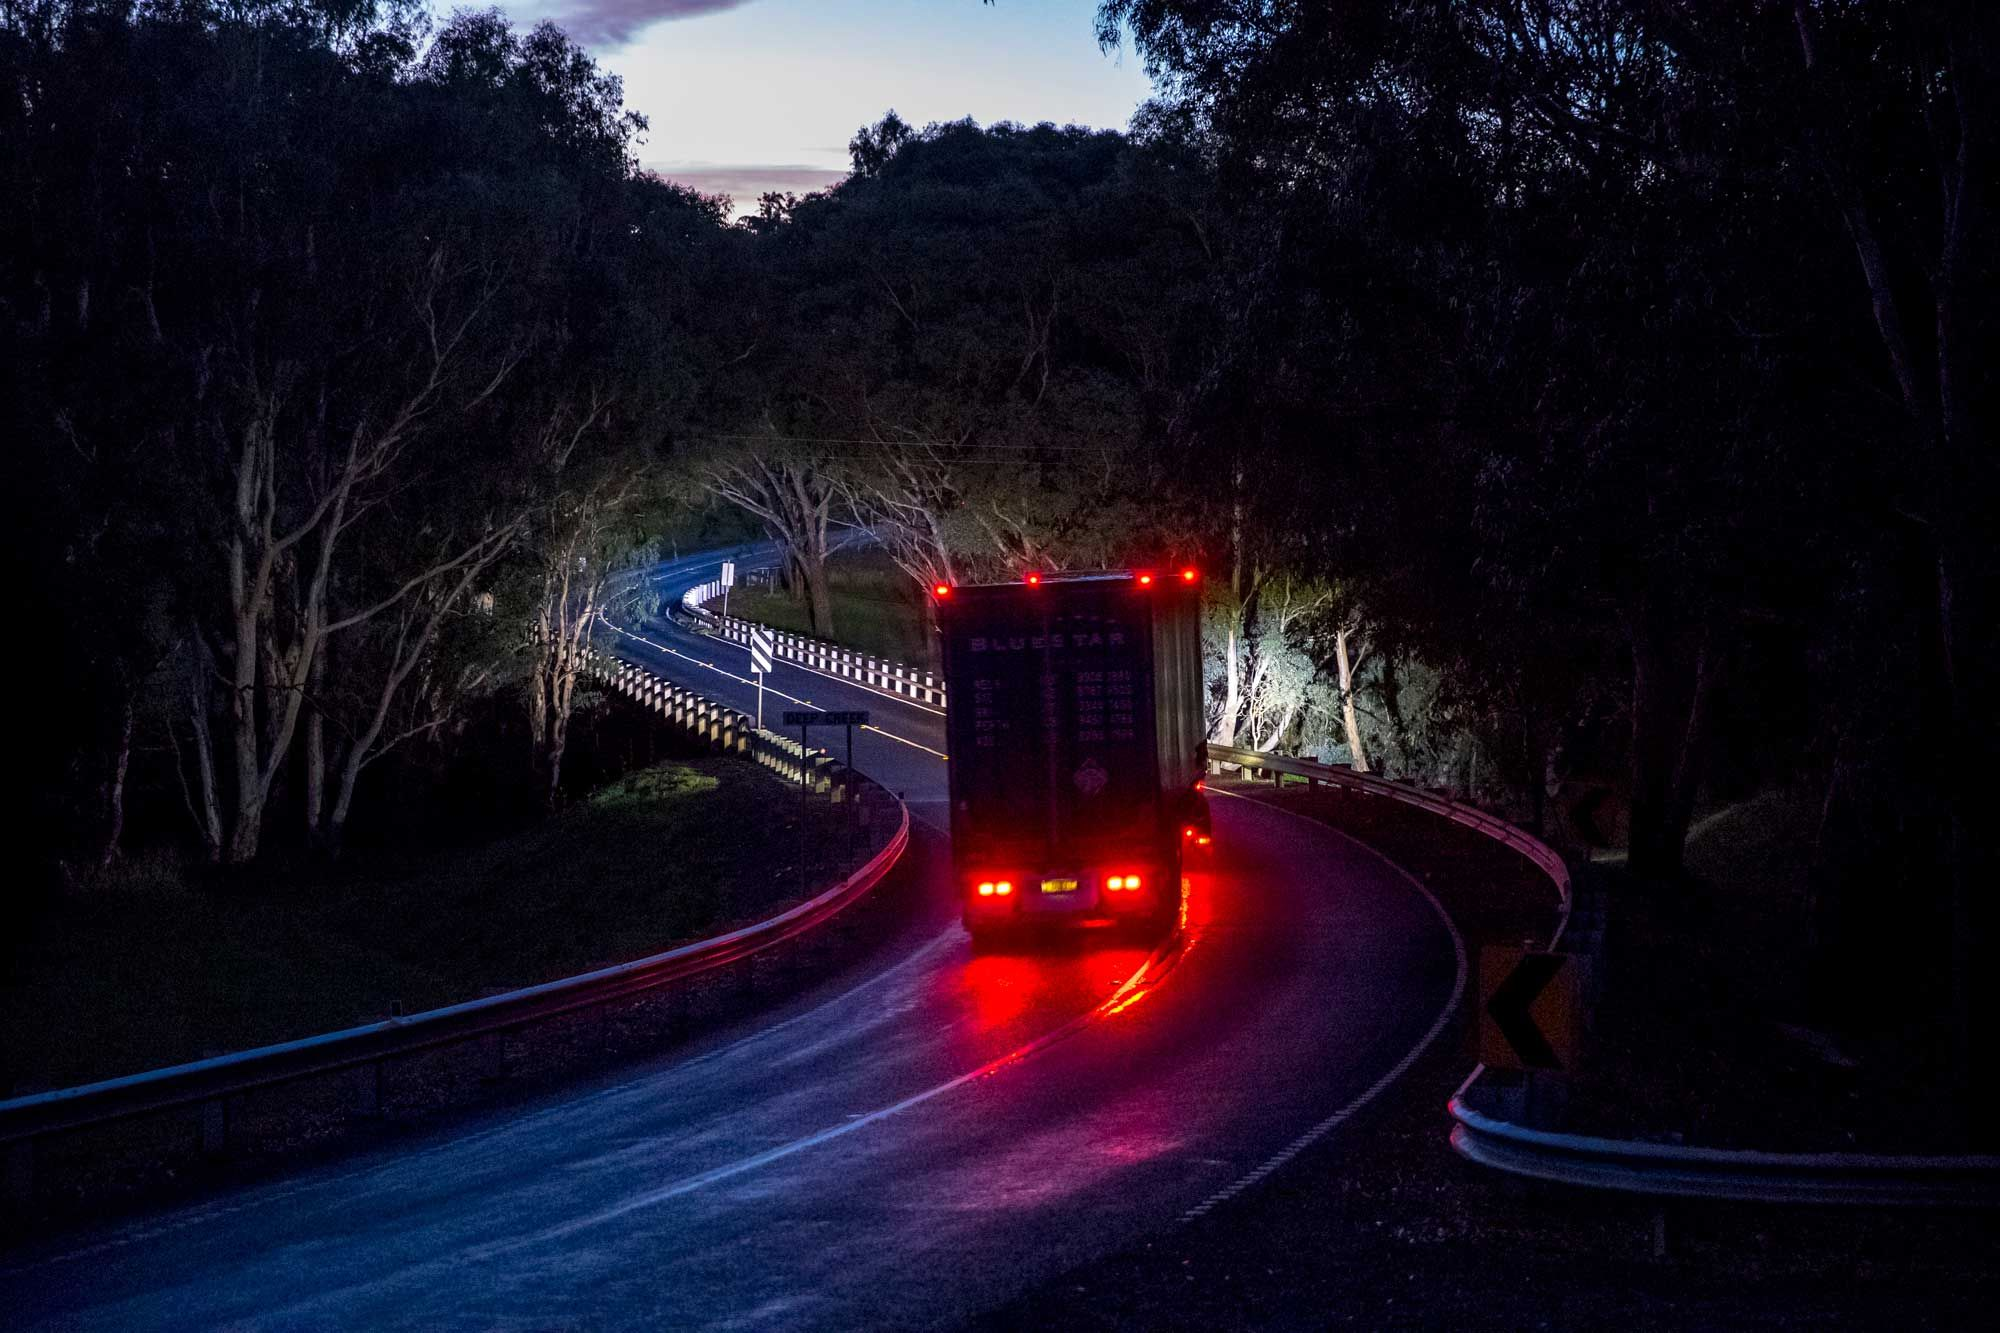 ultima 225 led performance on transport truck